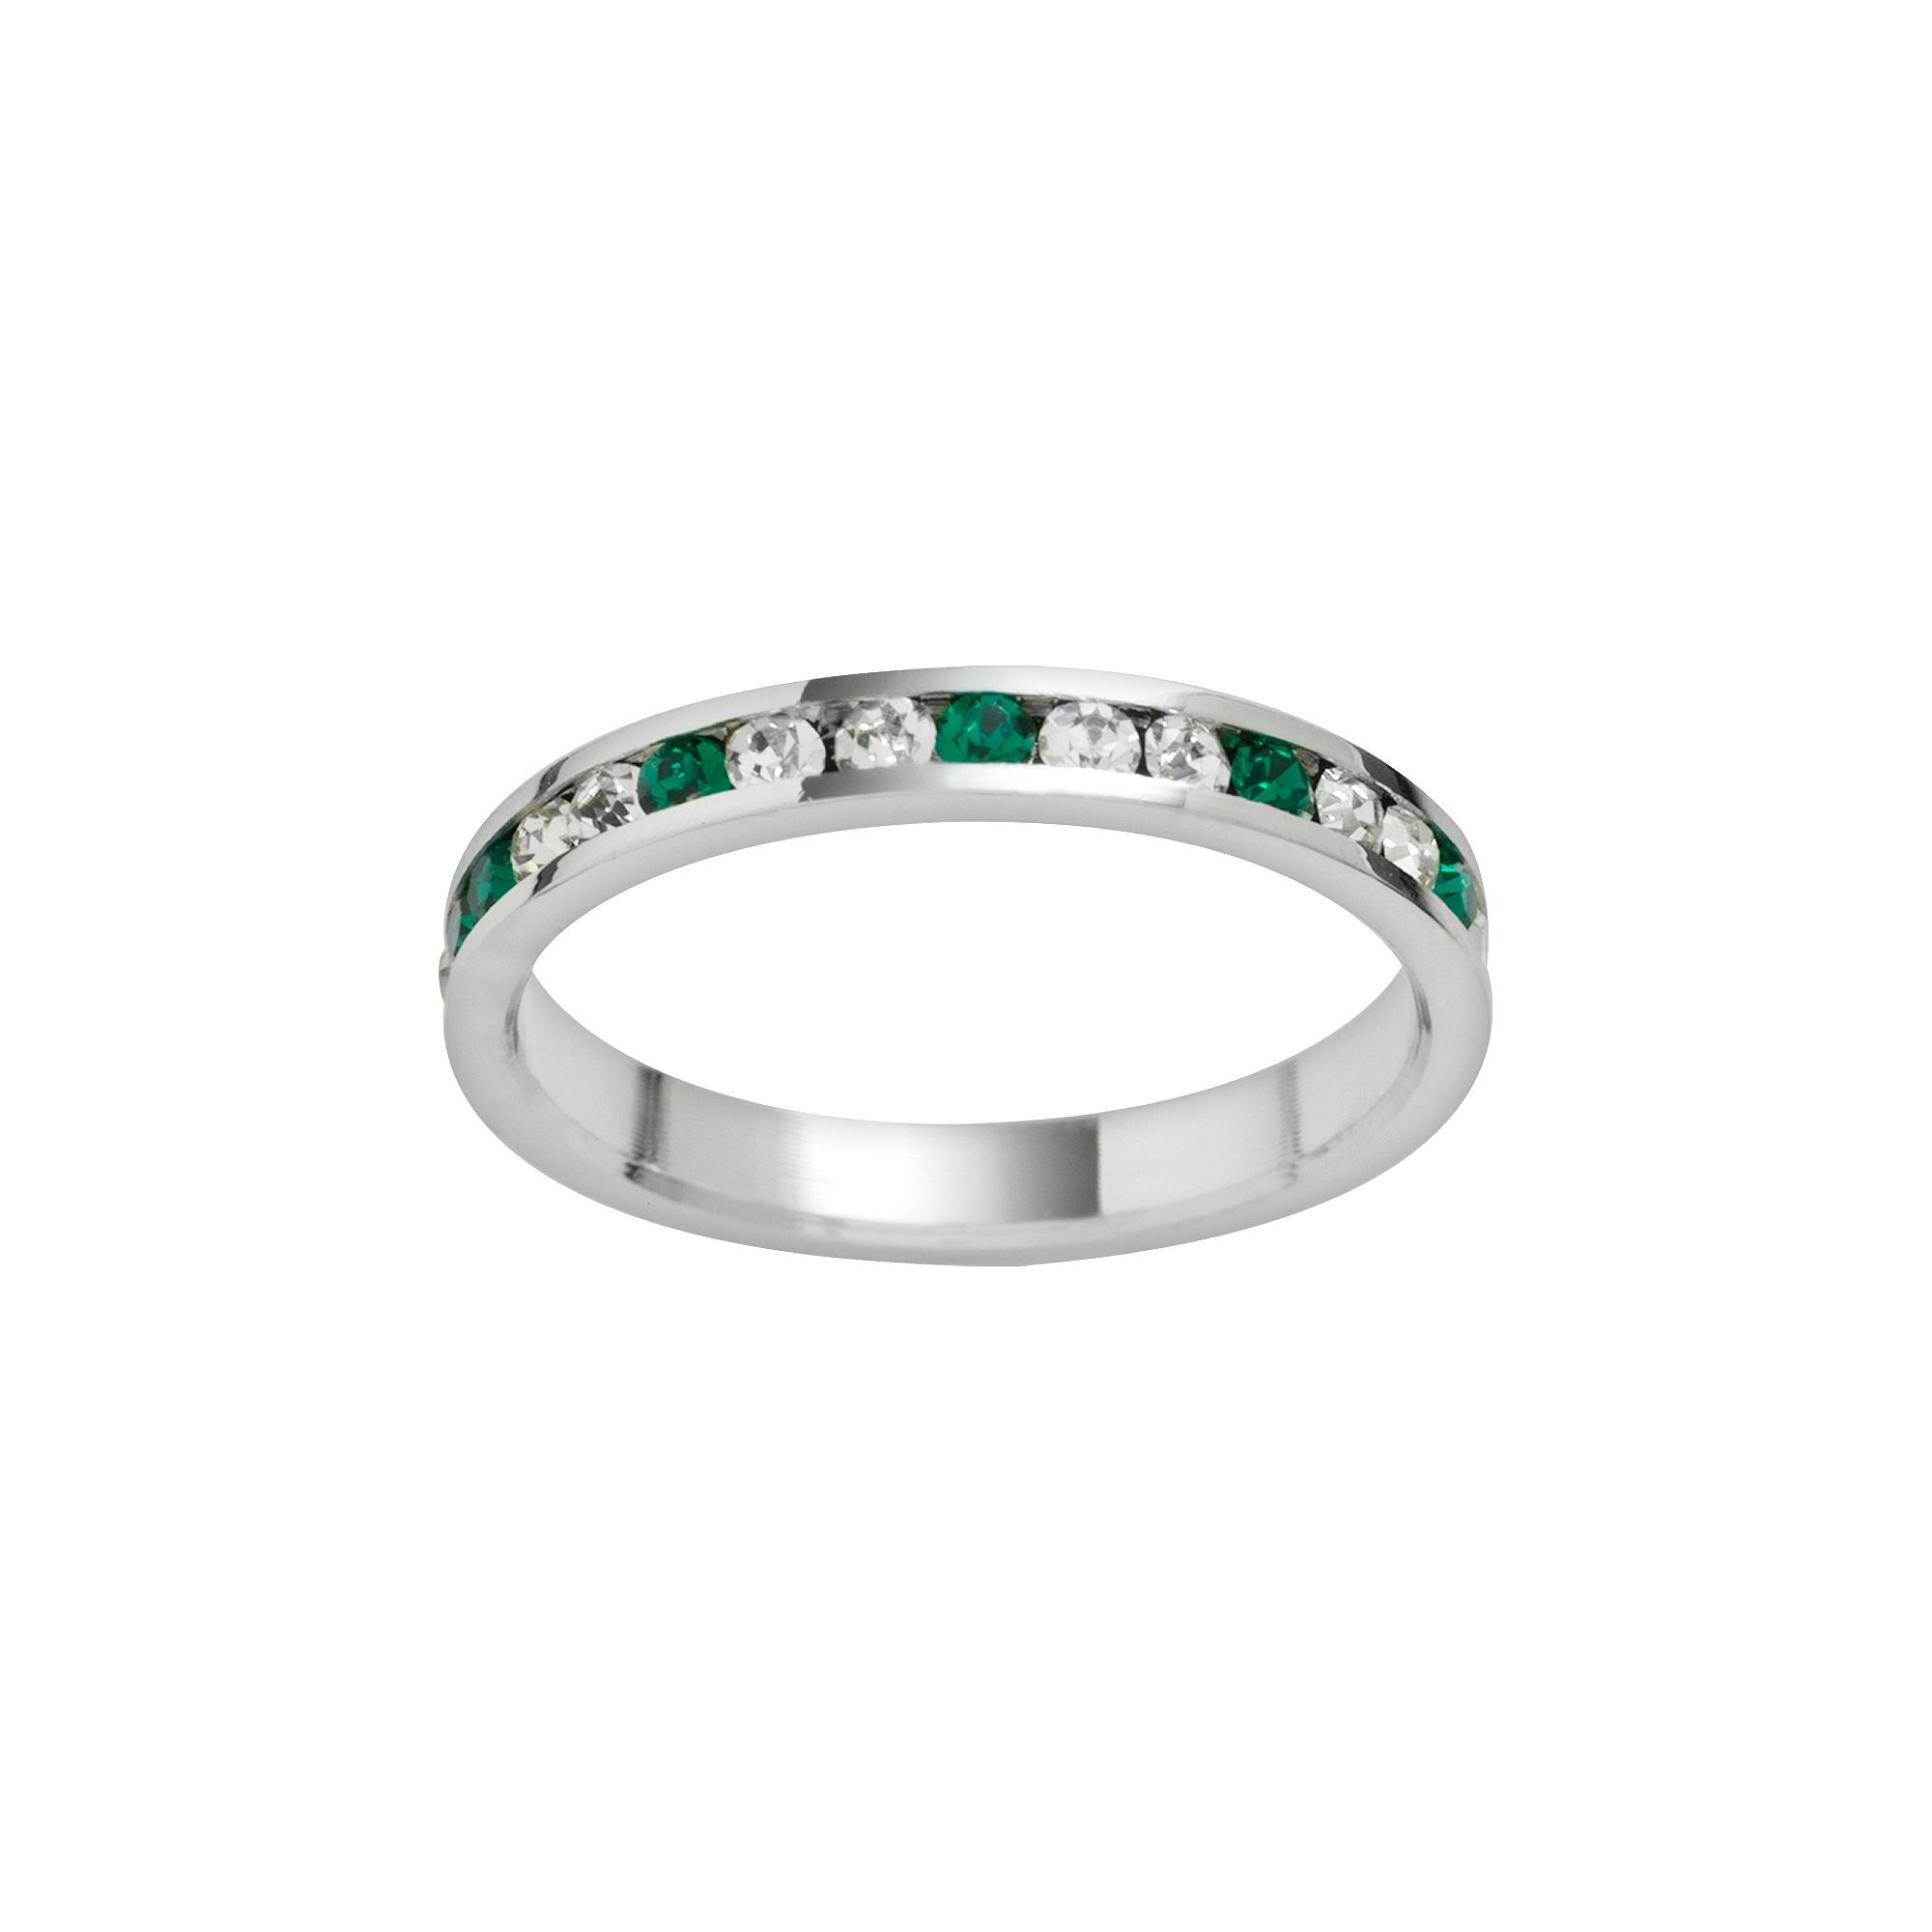 1818ab2b7 Traditions Sterling Silver Green and White Swarovski Crystal Eternity Ring,  Women's, Size: 6